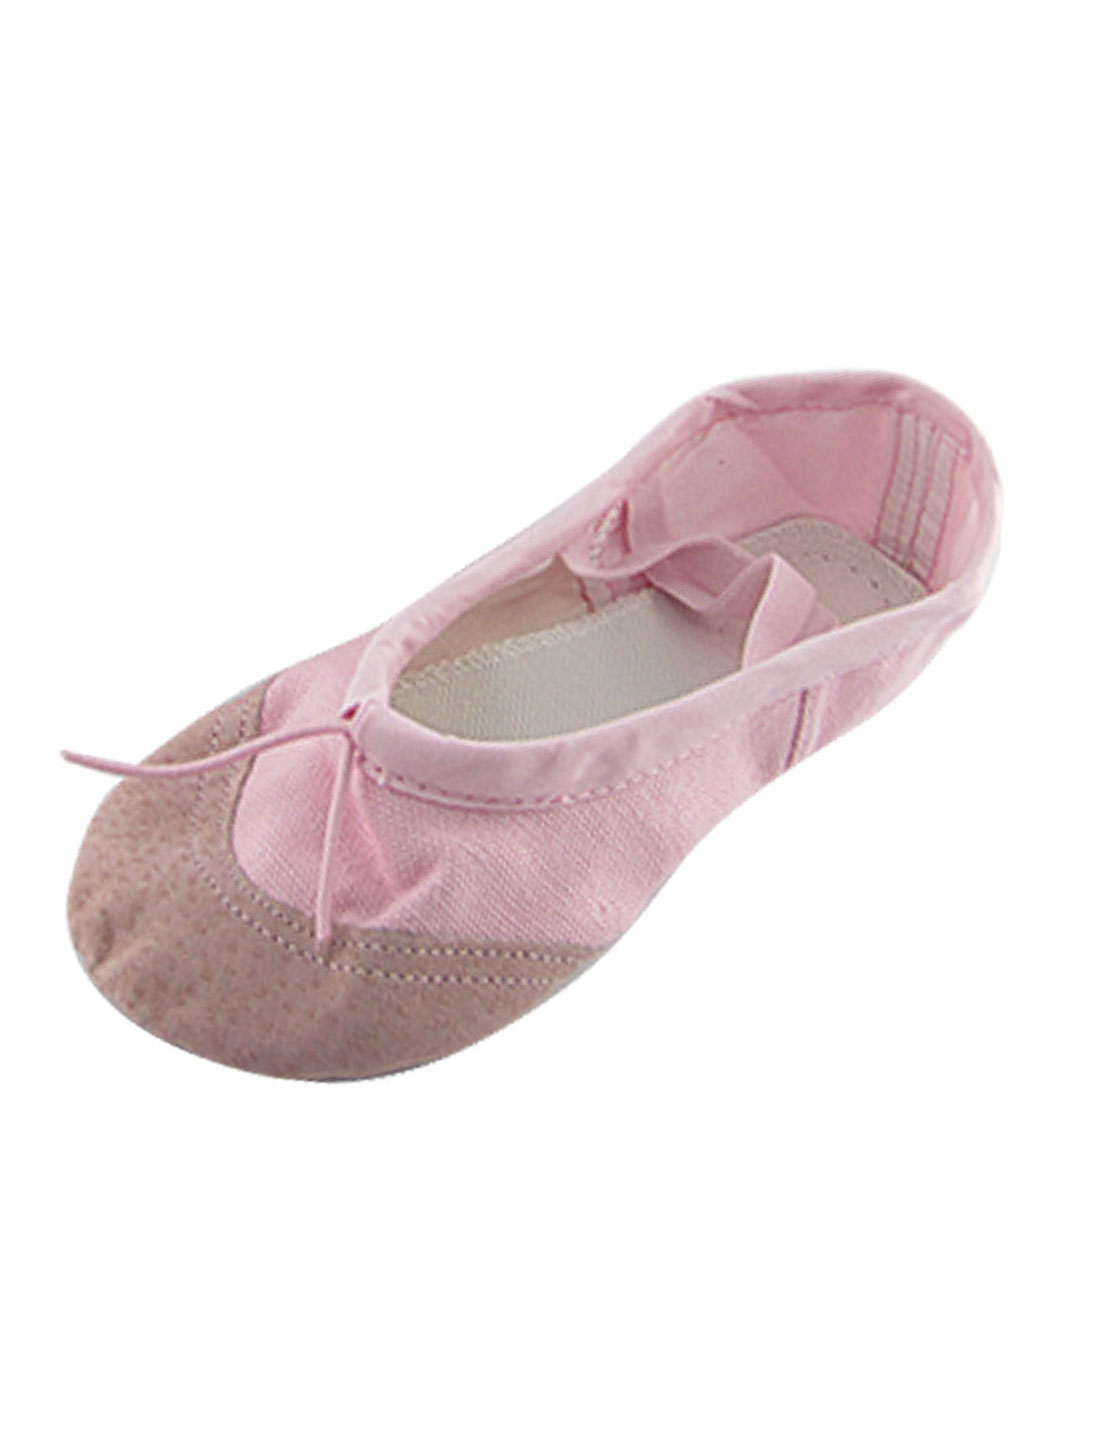 US-Sz-13-5-Elastic-Band-Dancig-Ballet-Girls-Flat-Shoes-Gqirv